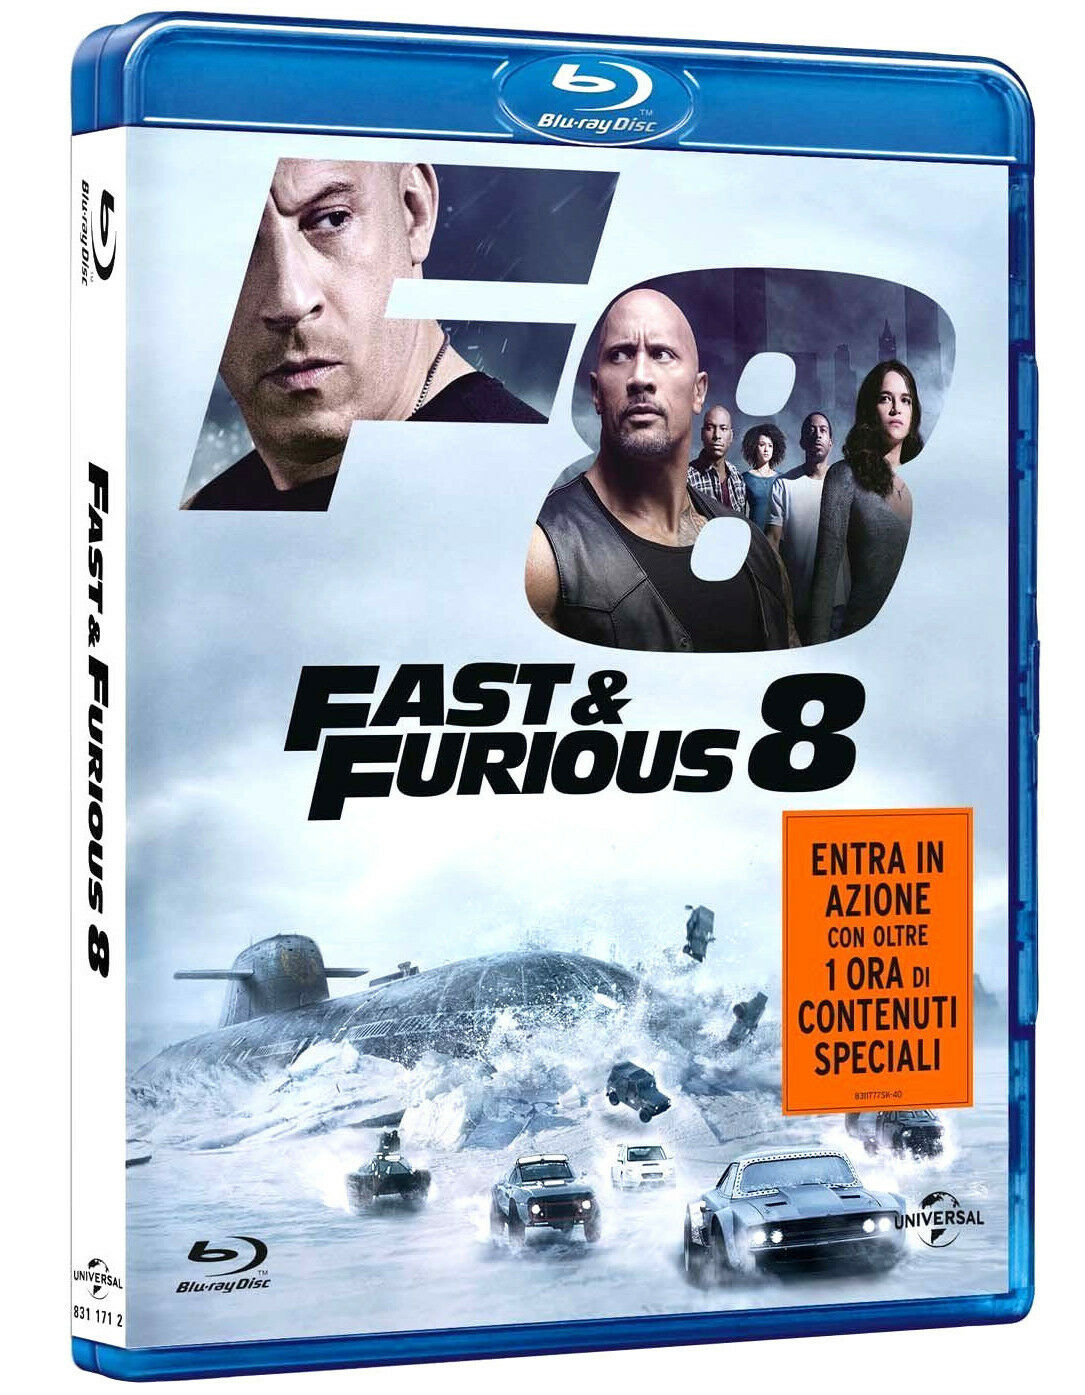 fast and furious 8 blu ray dwayne johnson vin diesel charlize theron chf picclick ch. Black Bedroom Furniture Sets. Home Design Ideas